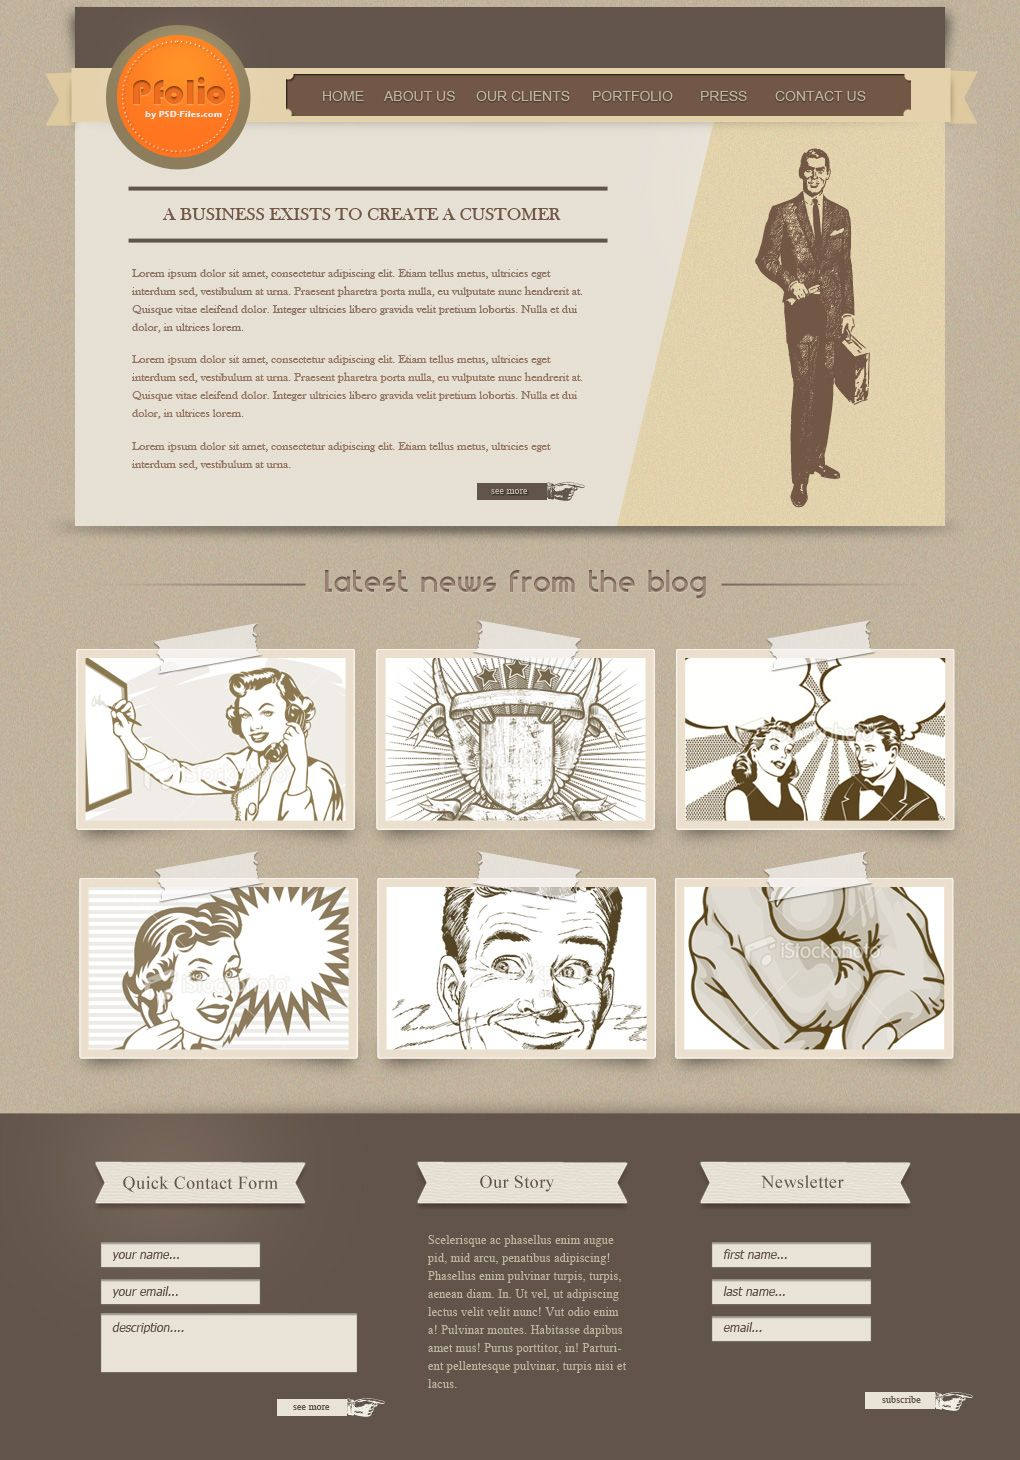 Httppsd filesbloghow to create a vintage photoshop file how to create a vintage photoshop website layout baditri Images